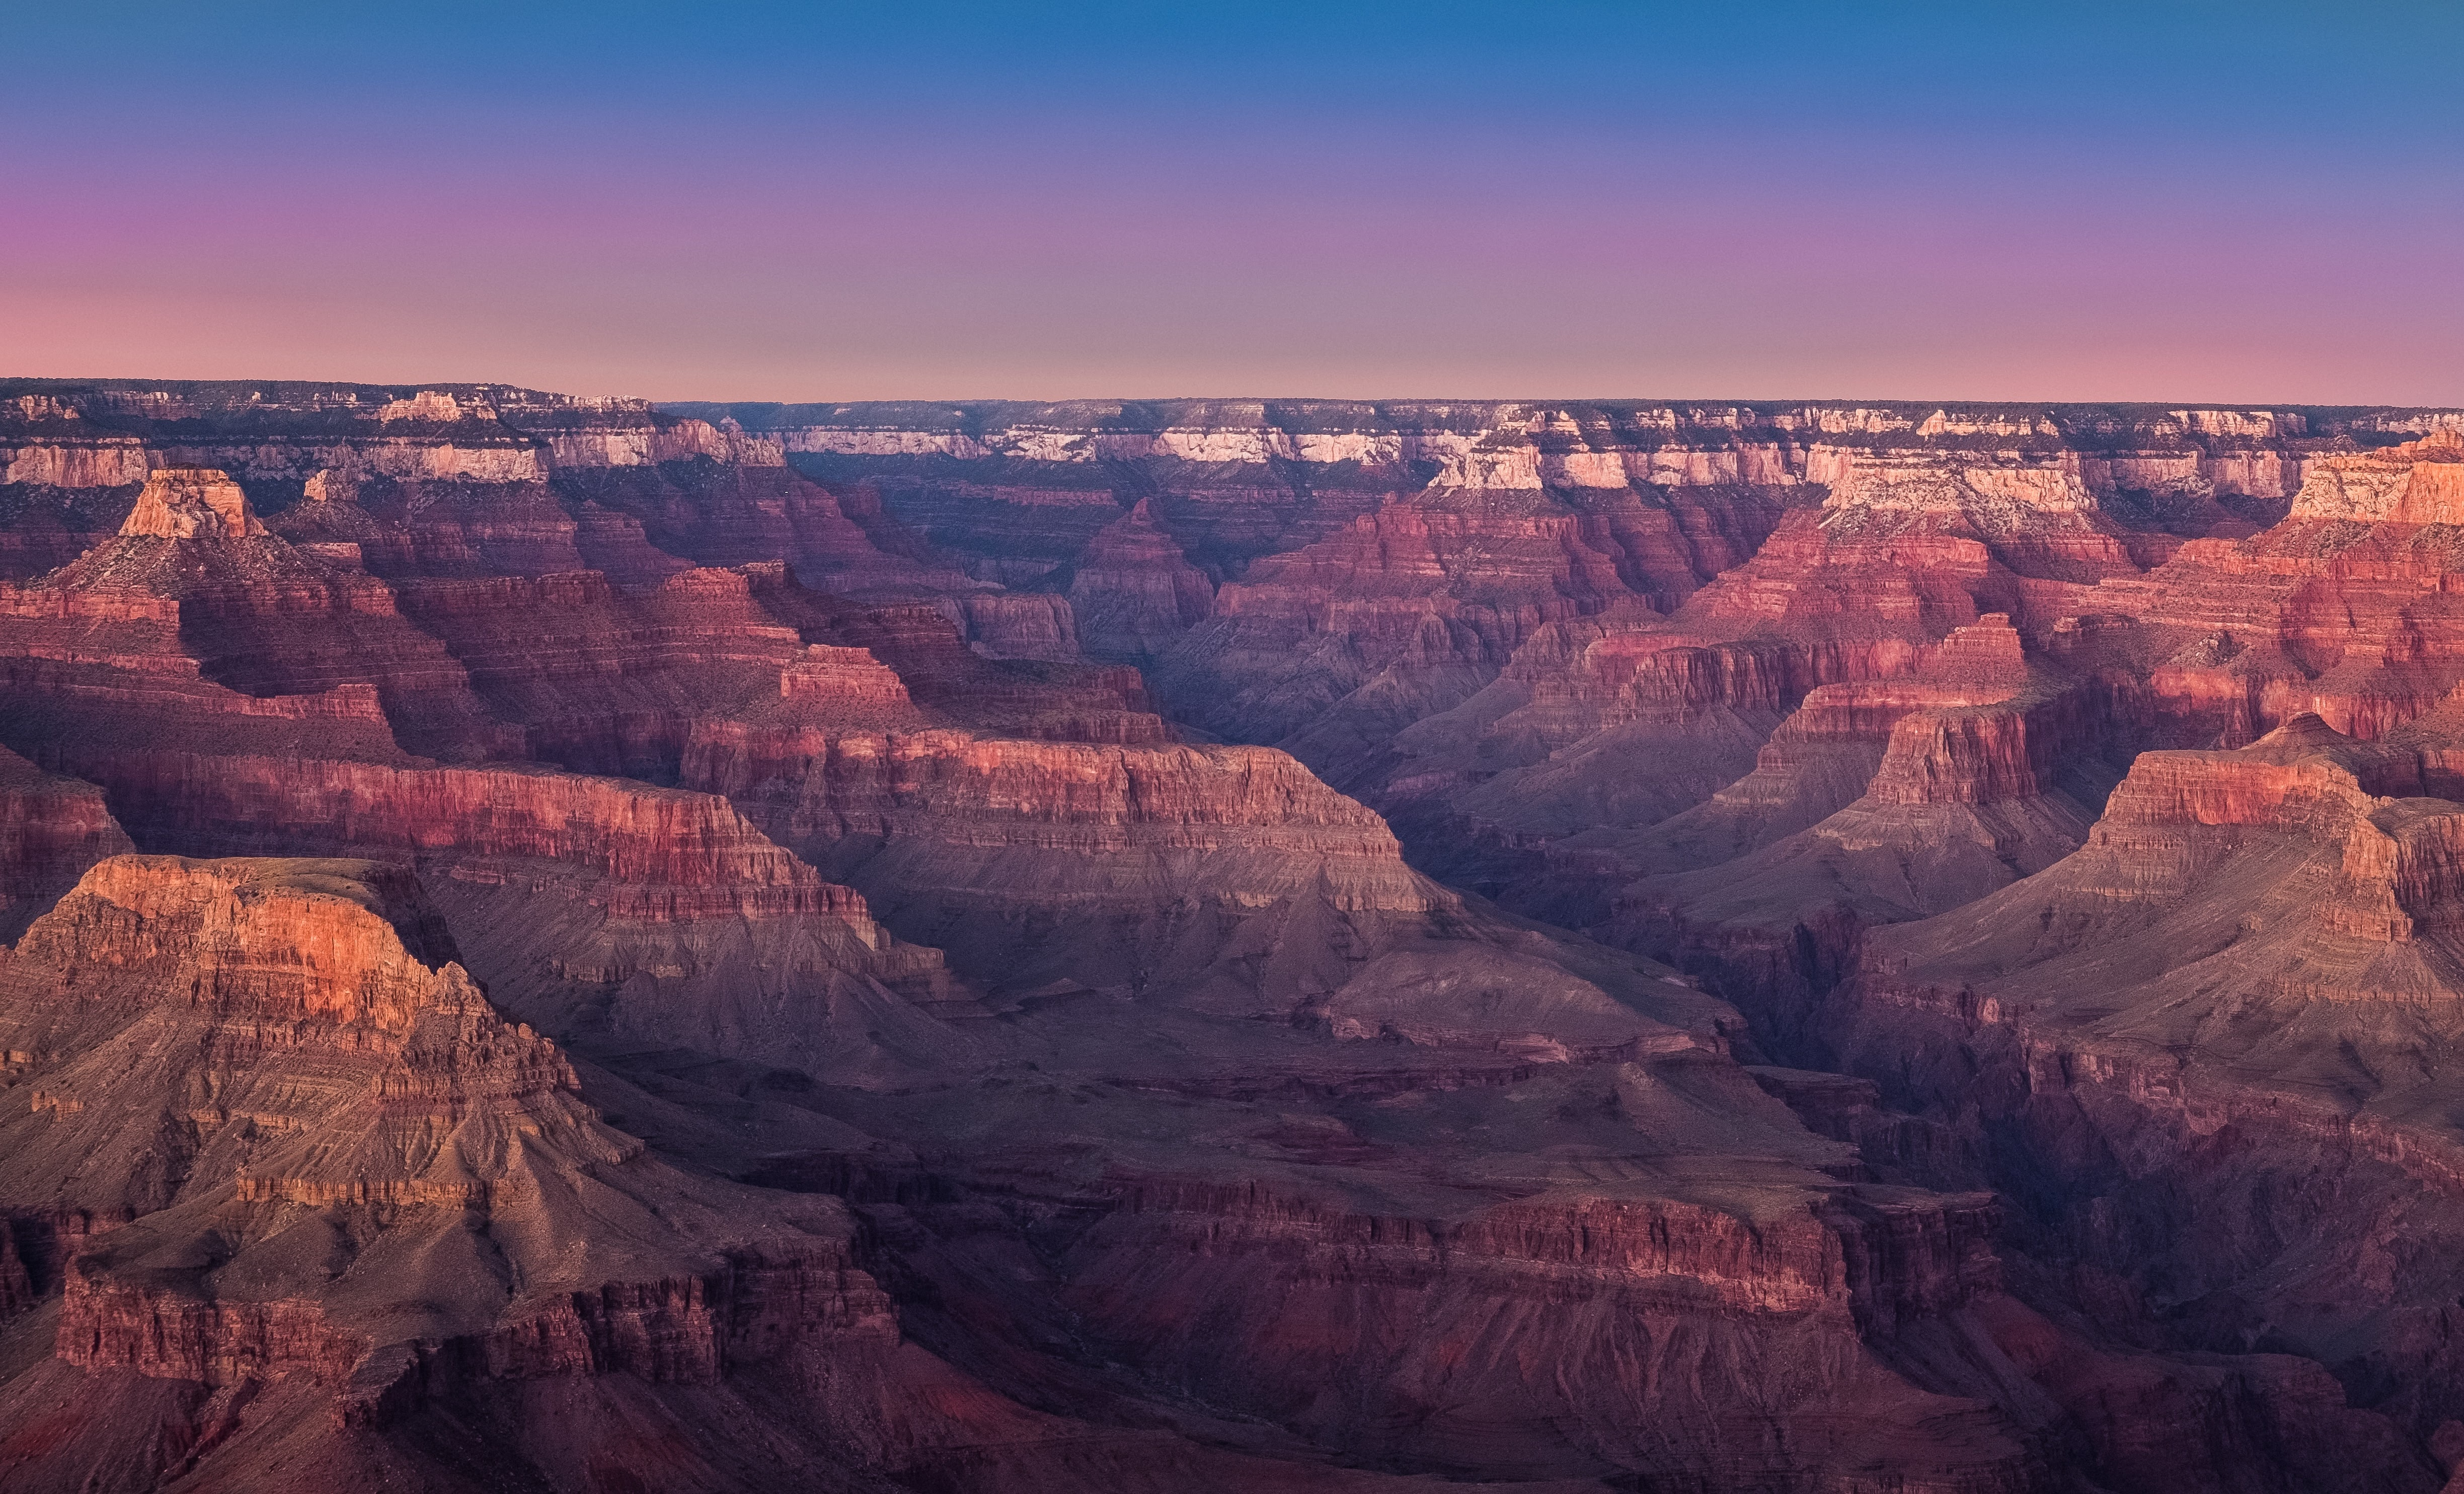 Colorful sunset over the beautiful Grand Canyon